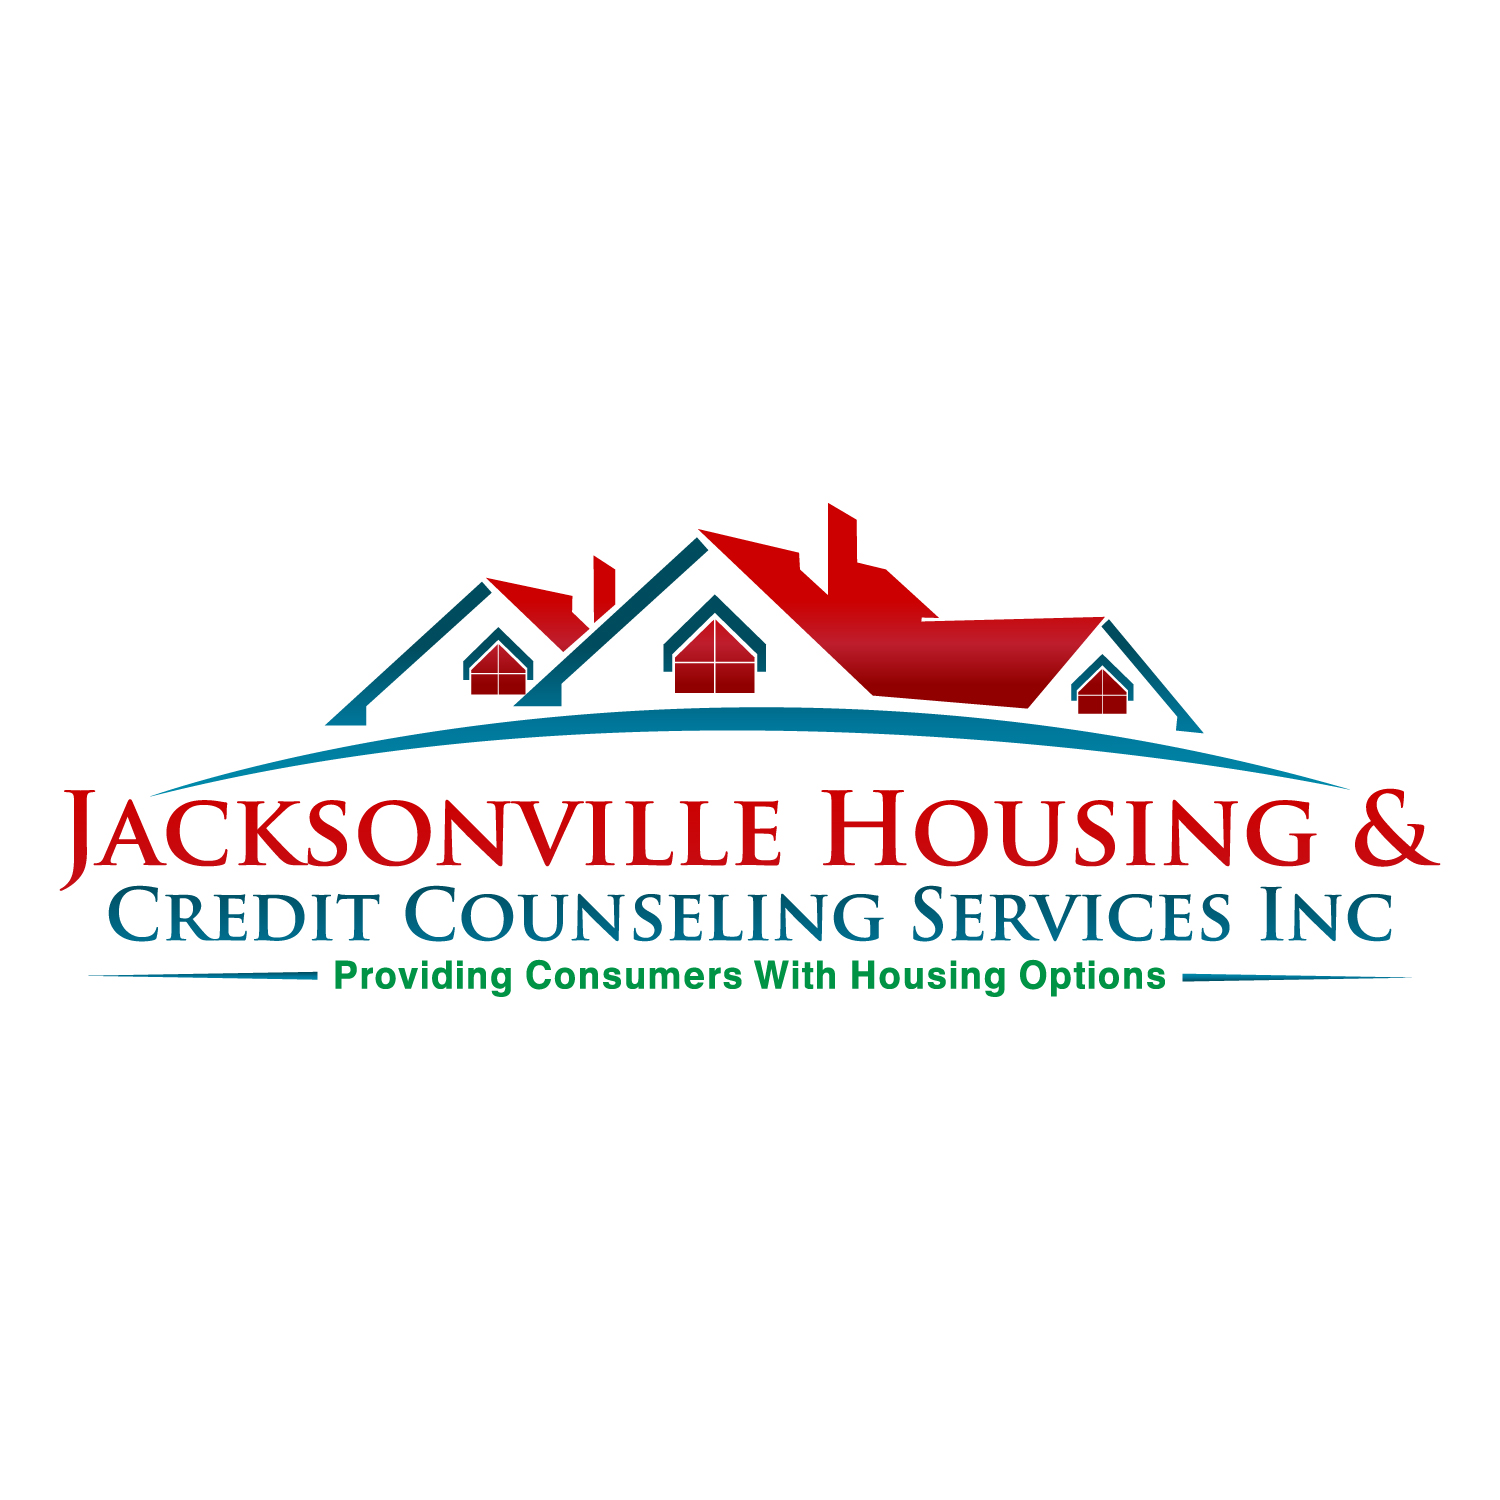 Jacksonville Housing and Credit Counseling Services, Inc.